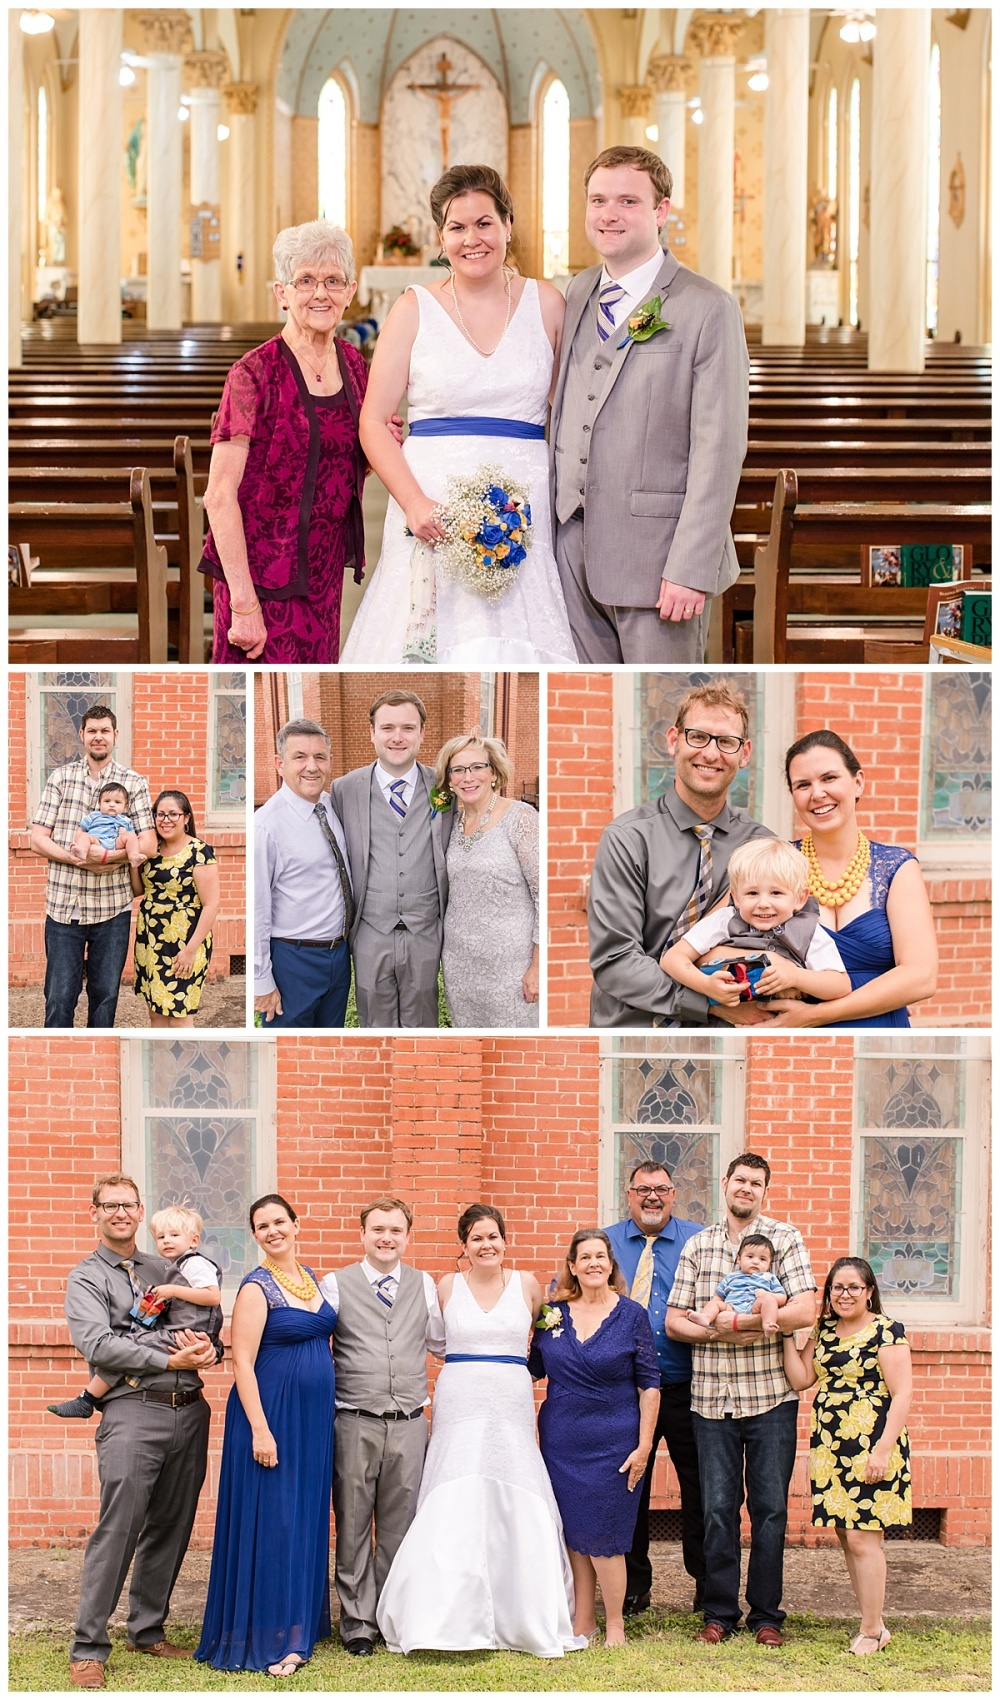 Texas-Wedding-Photographer-La-Coste-Our-Lady-Of-Grace-Church-Bride-Groom-Lego-Theme-Carly-Barton-Photography_0036.jpg